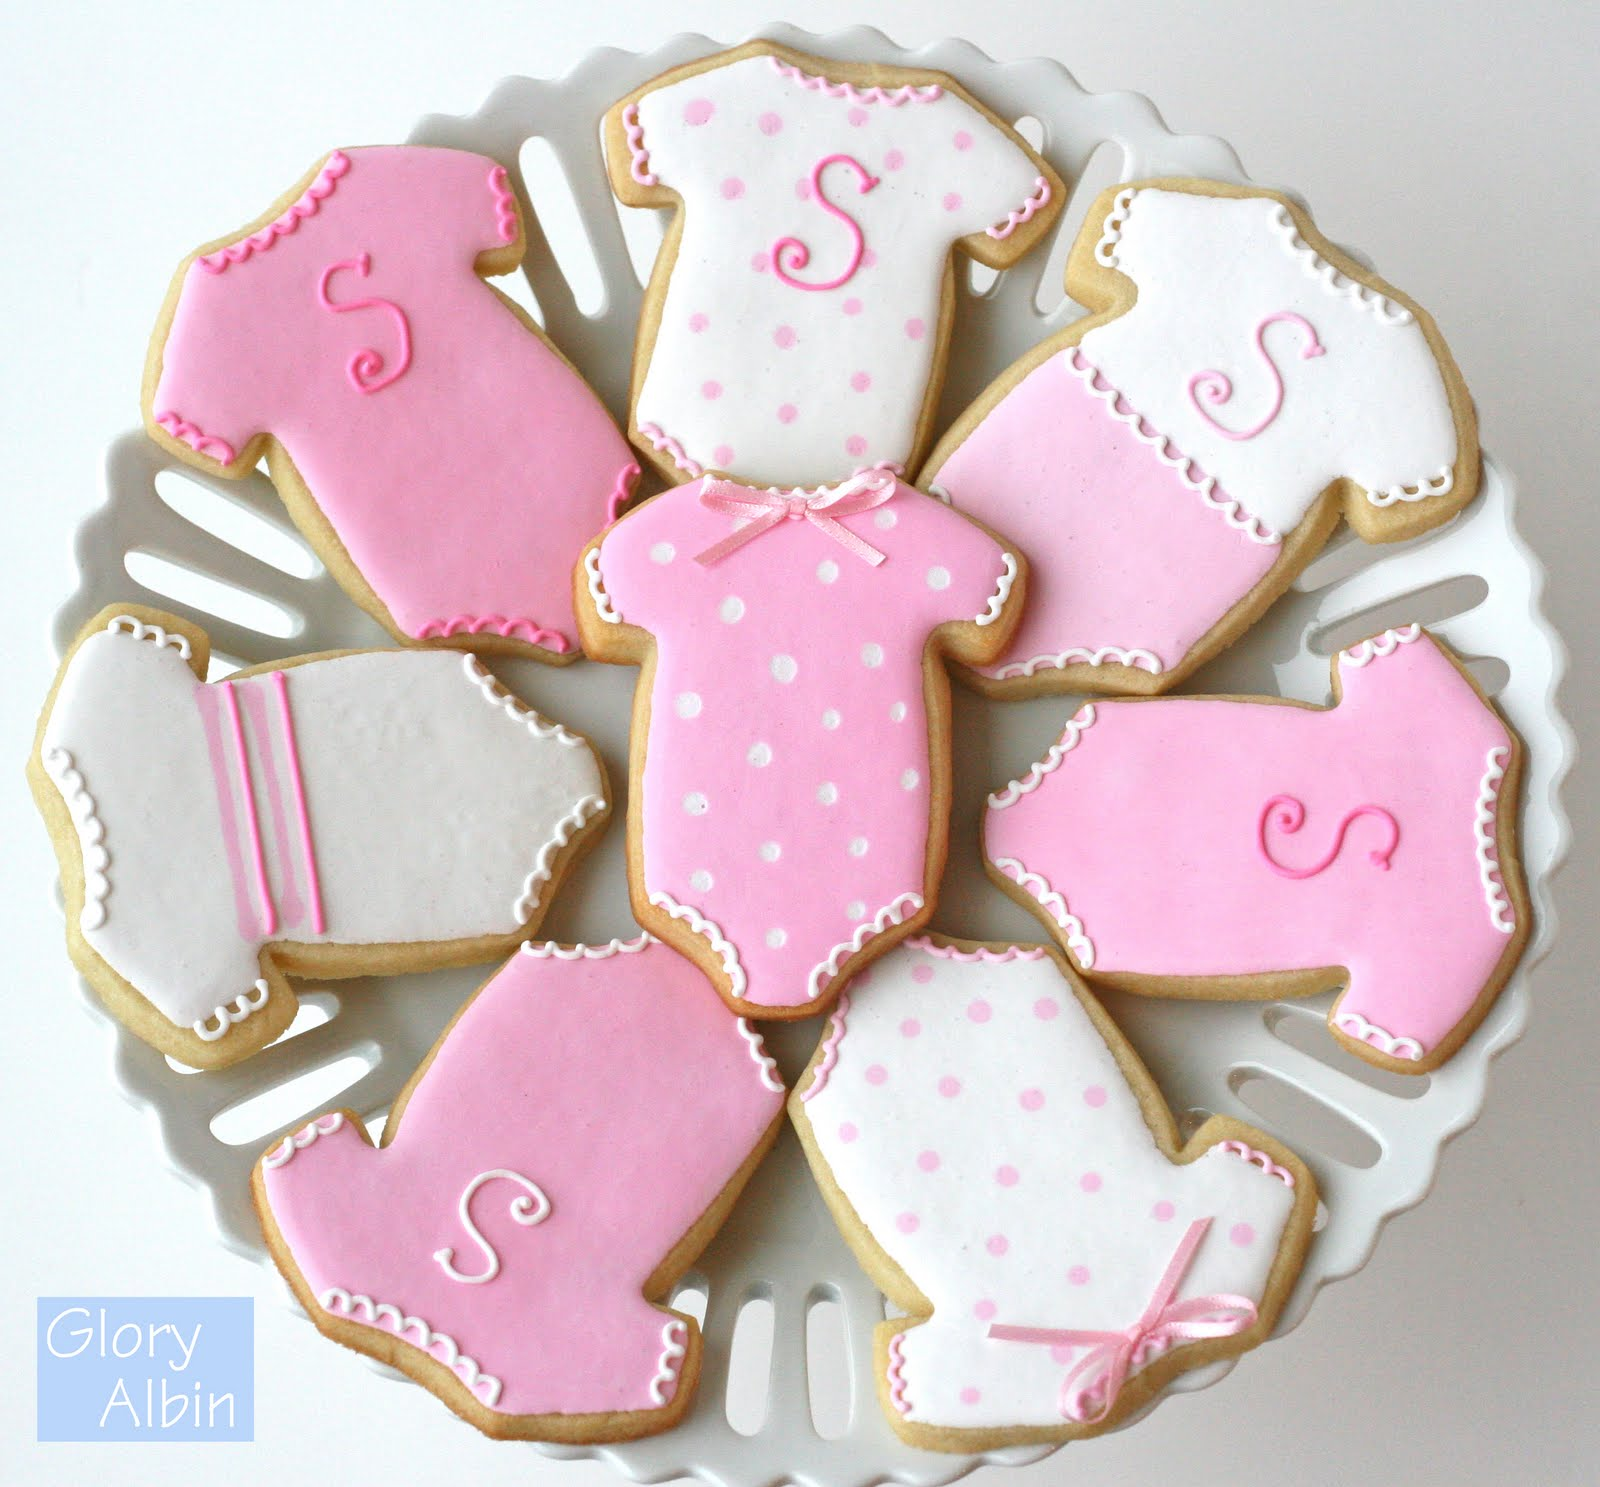 Decorating Sugar Cookies With Royal Icing  Glorious Treats. Decorative Plastic Wall Panels. Room And Home Furniture. Hunting Nursery Decor. Decorative Strap Hinges. Glass Decorative Balls For Bowls. Cottage Style Decor. Wedding Decorations Jacksonville Fl. Mirror Decor